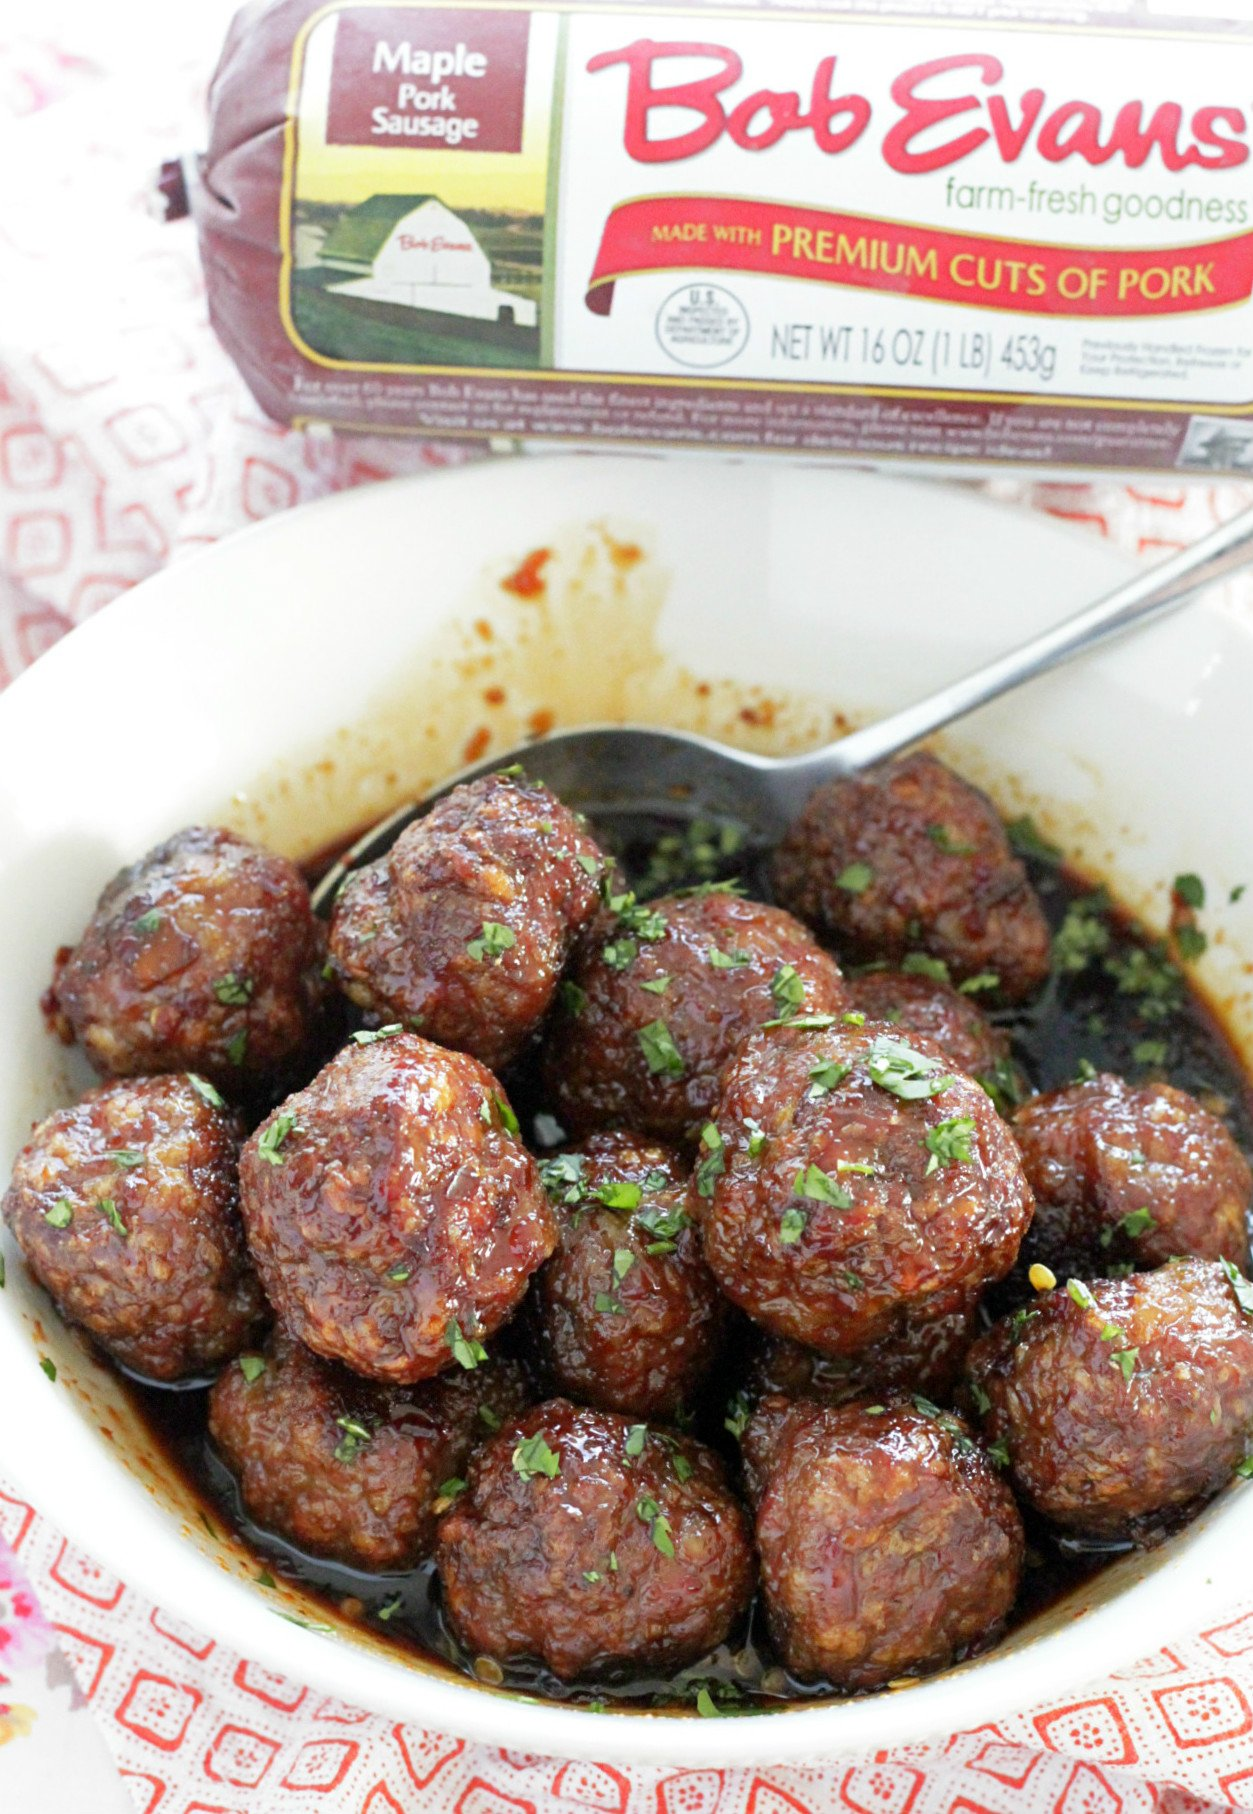 maple meatballs with bob evans sausage roll